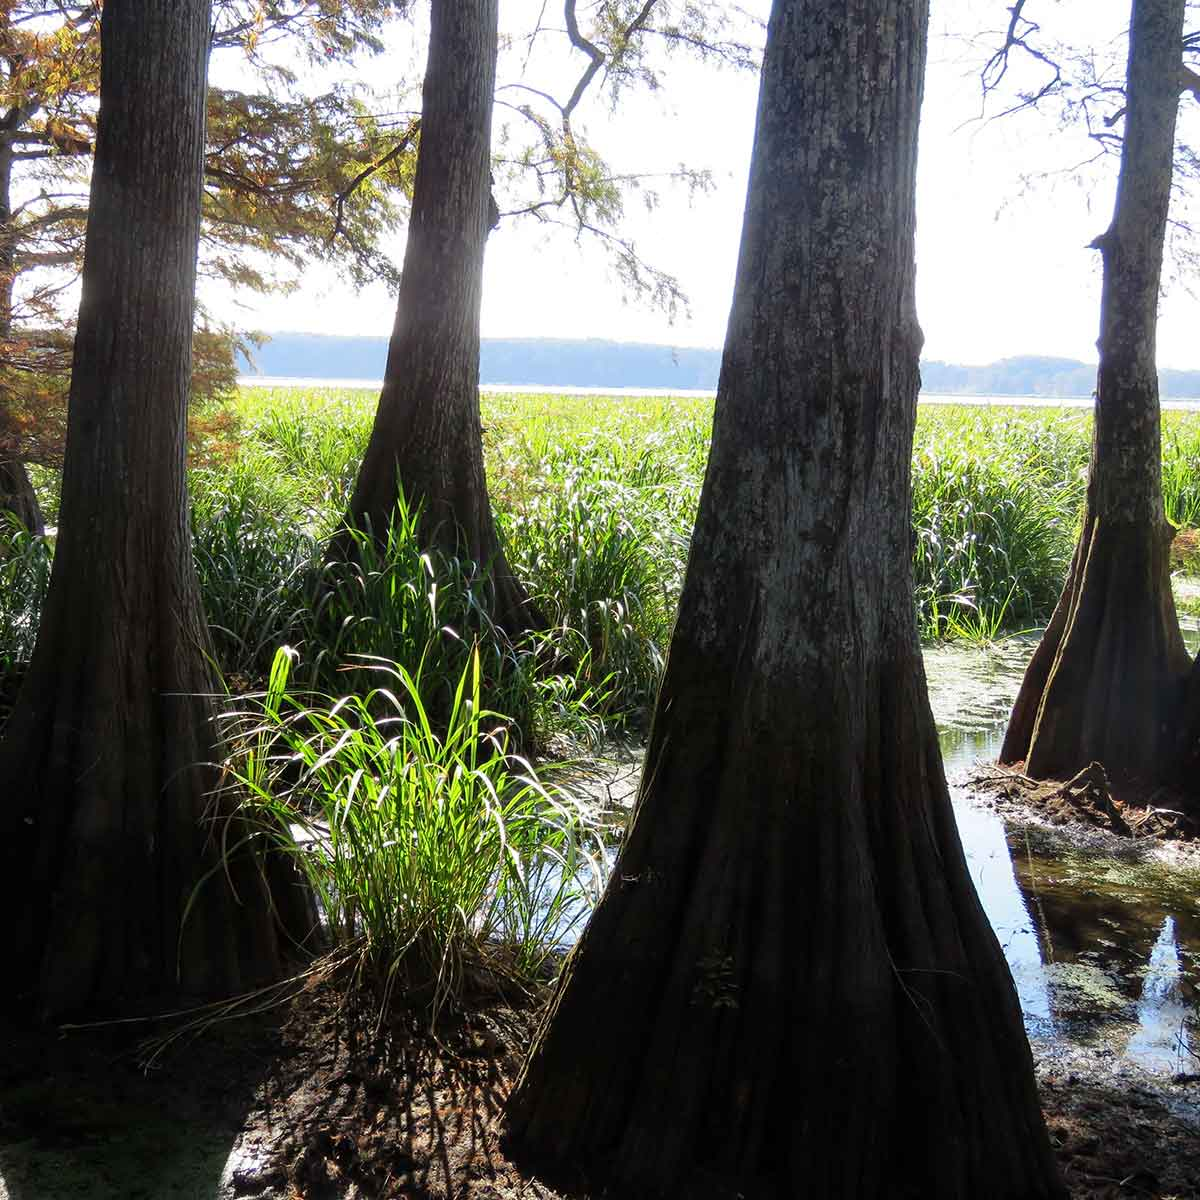 Cypress trees on a stress-reducing walk reminded me of the new leaders walking into office — dark and foreboding figures.